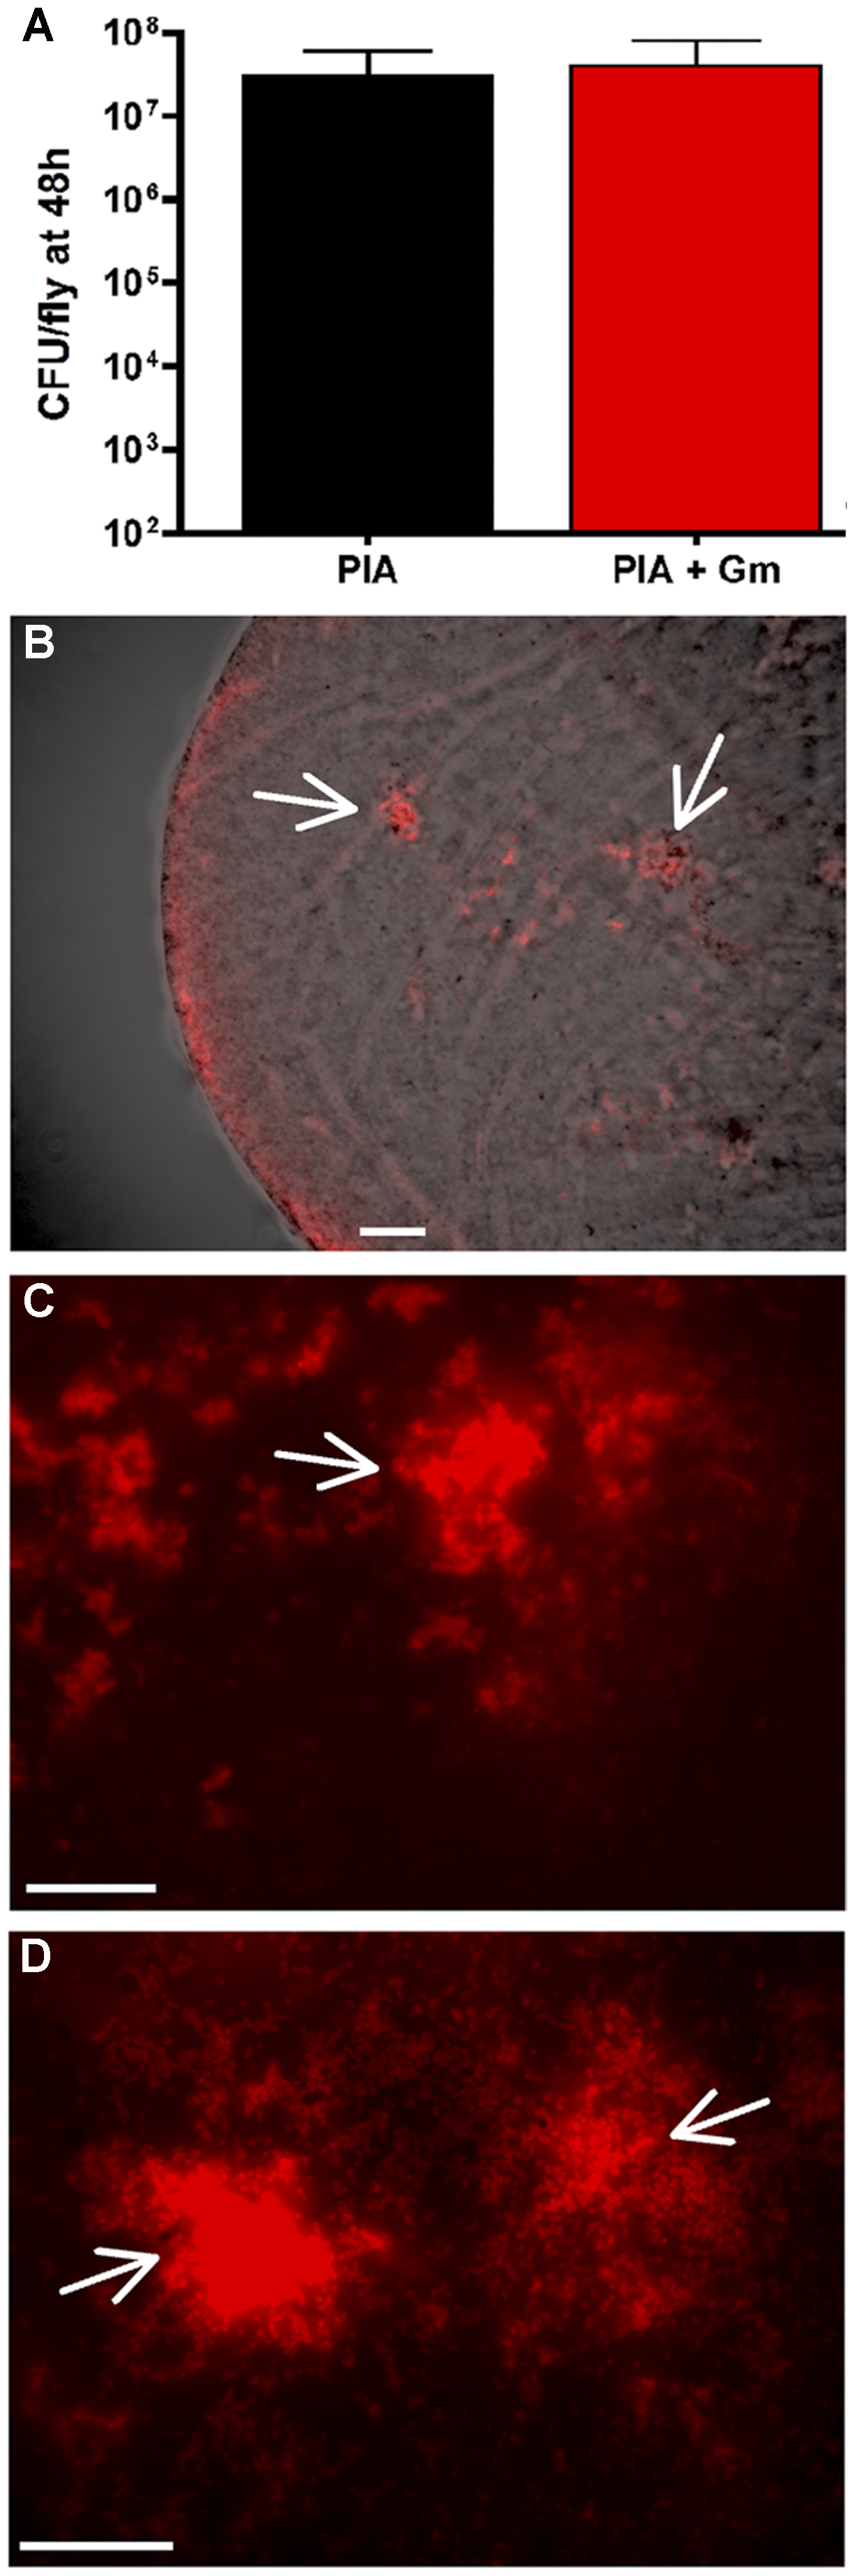 PAO1 (pCHAP6656) infection of the <i>Drosophila</i> crop.